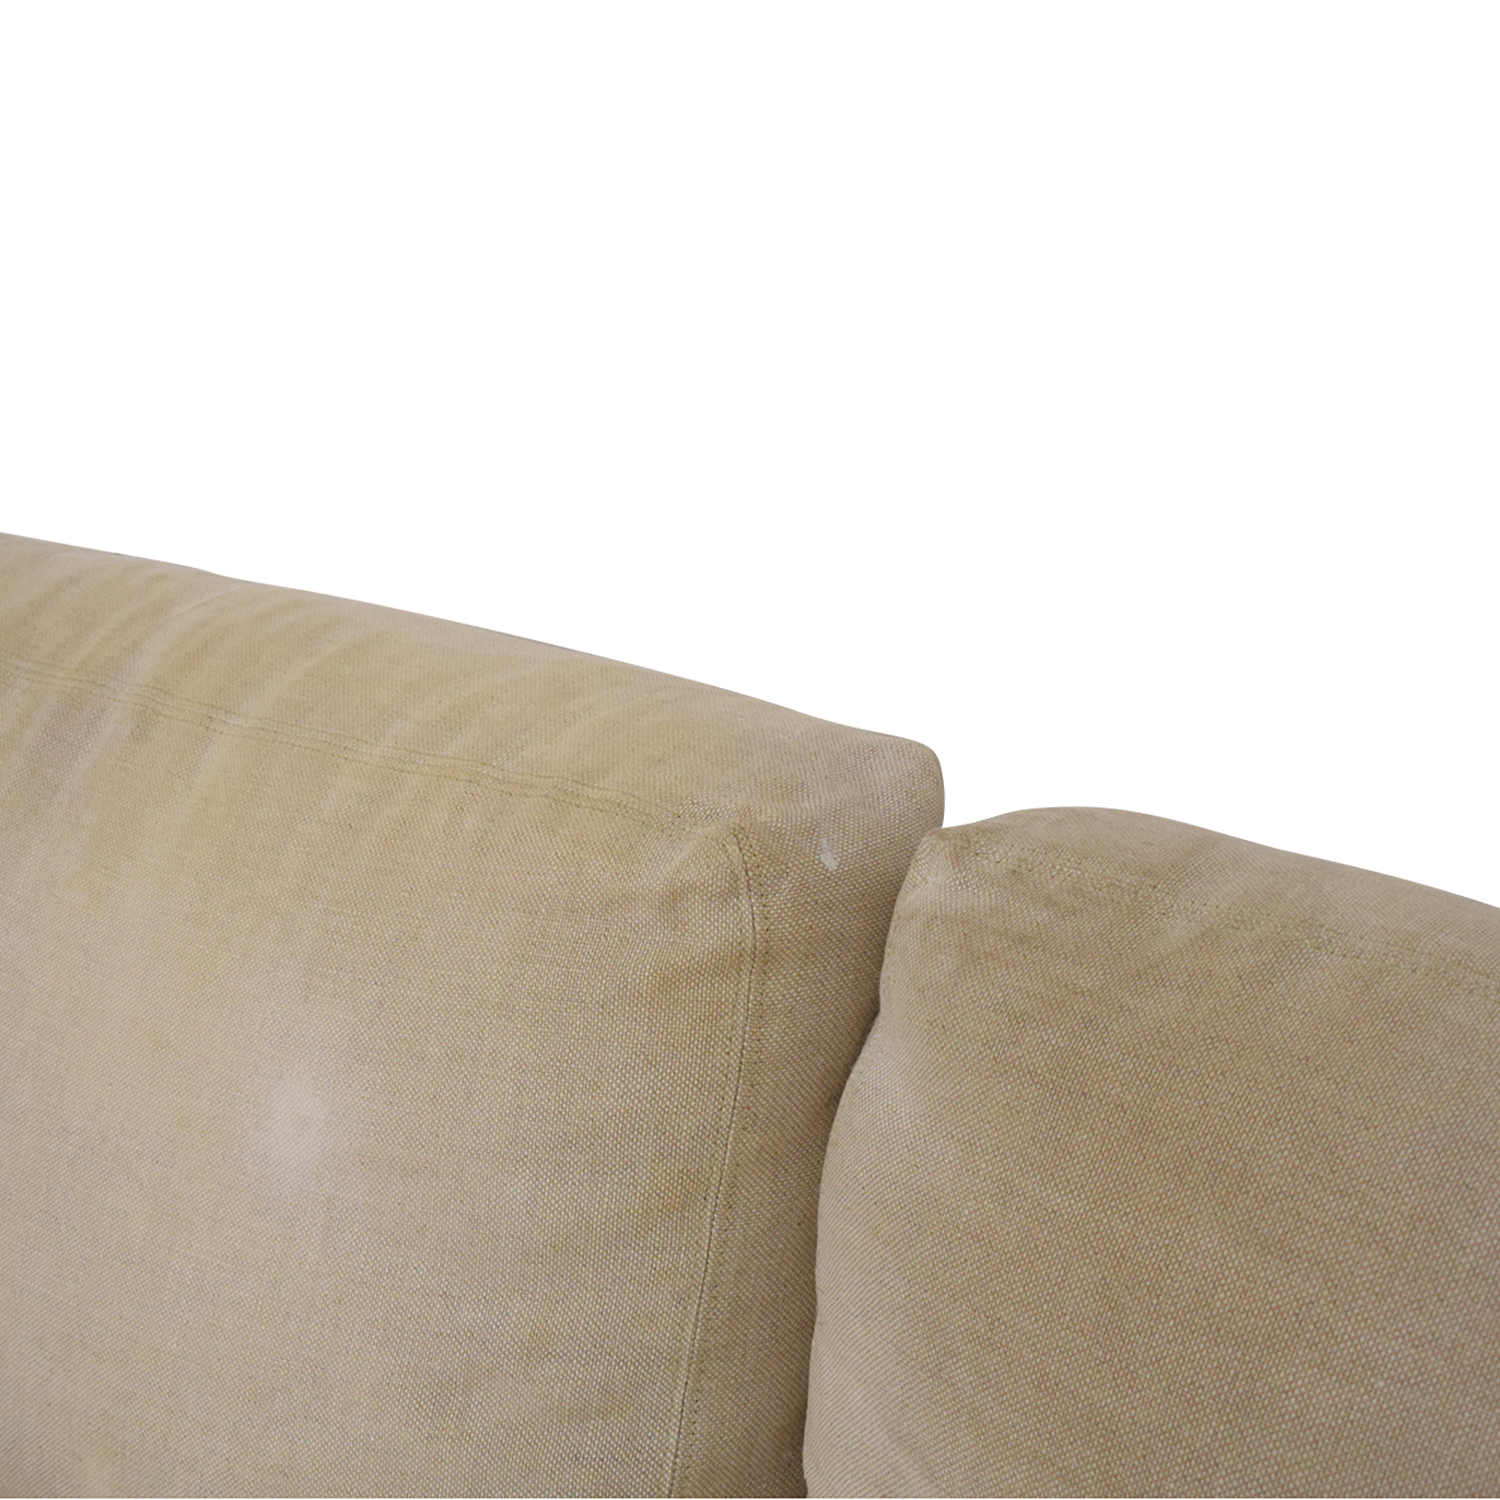 Restoration Hardware Restoration Hardware Maxwell Chaise Sectional Sofa ct